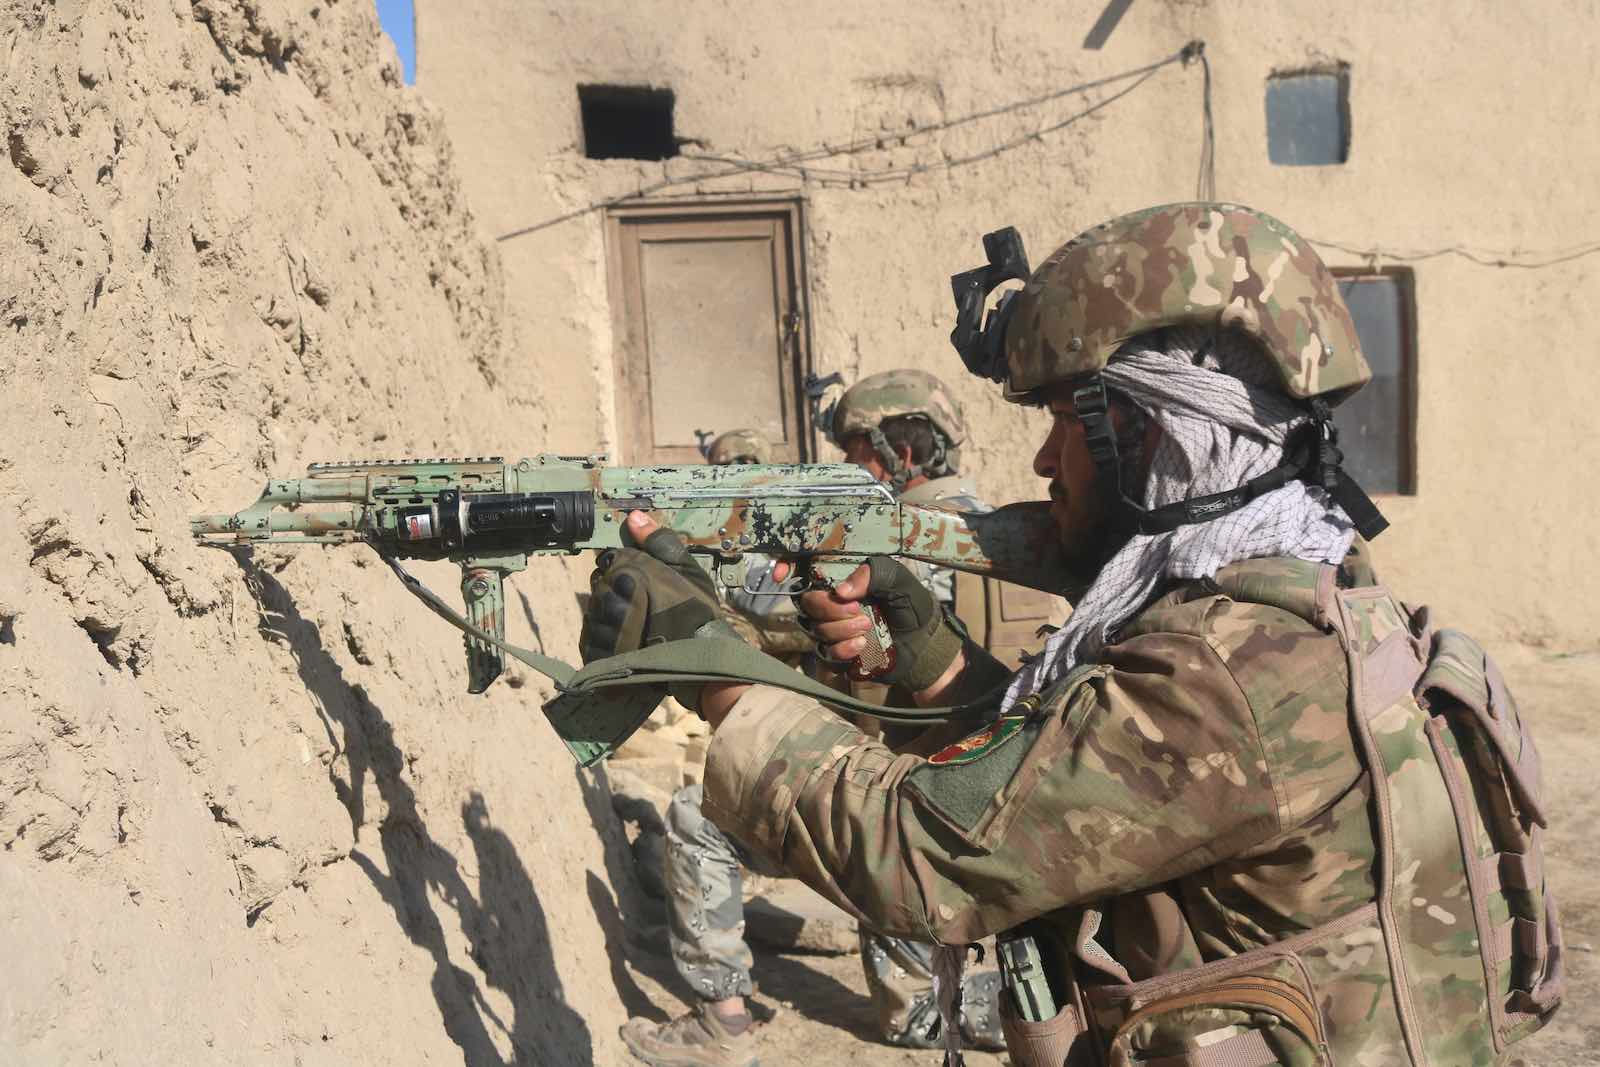 Afghan security forces in an operation against Taliban militants in Jawzjan province, Afghanistan, 16 February 2021 (Mohammad Jan Aria/Xinhua via Getty Images)